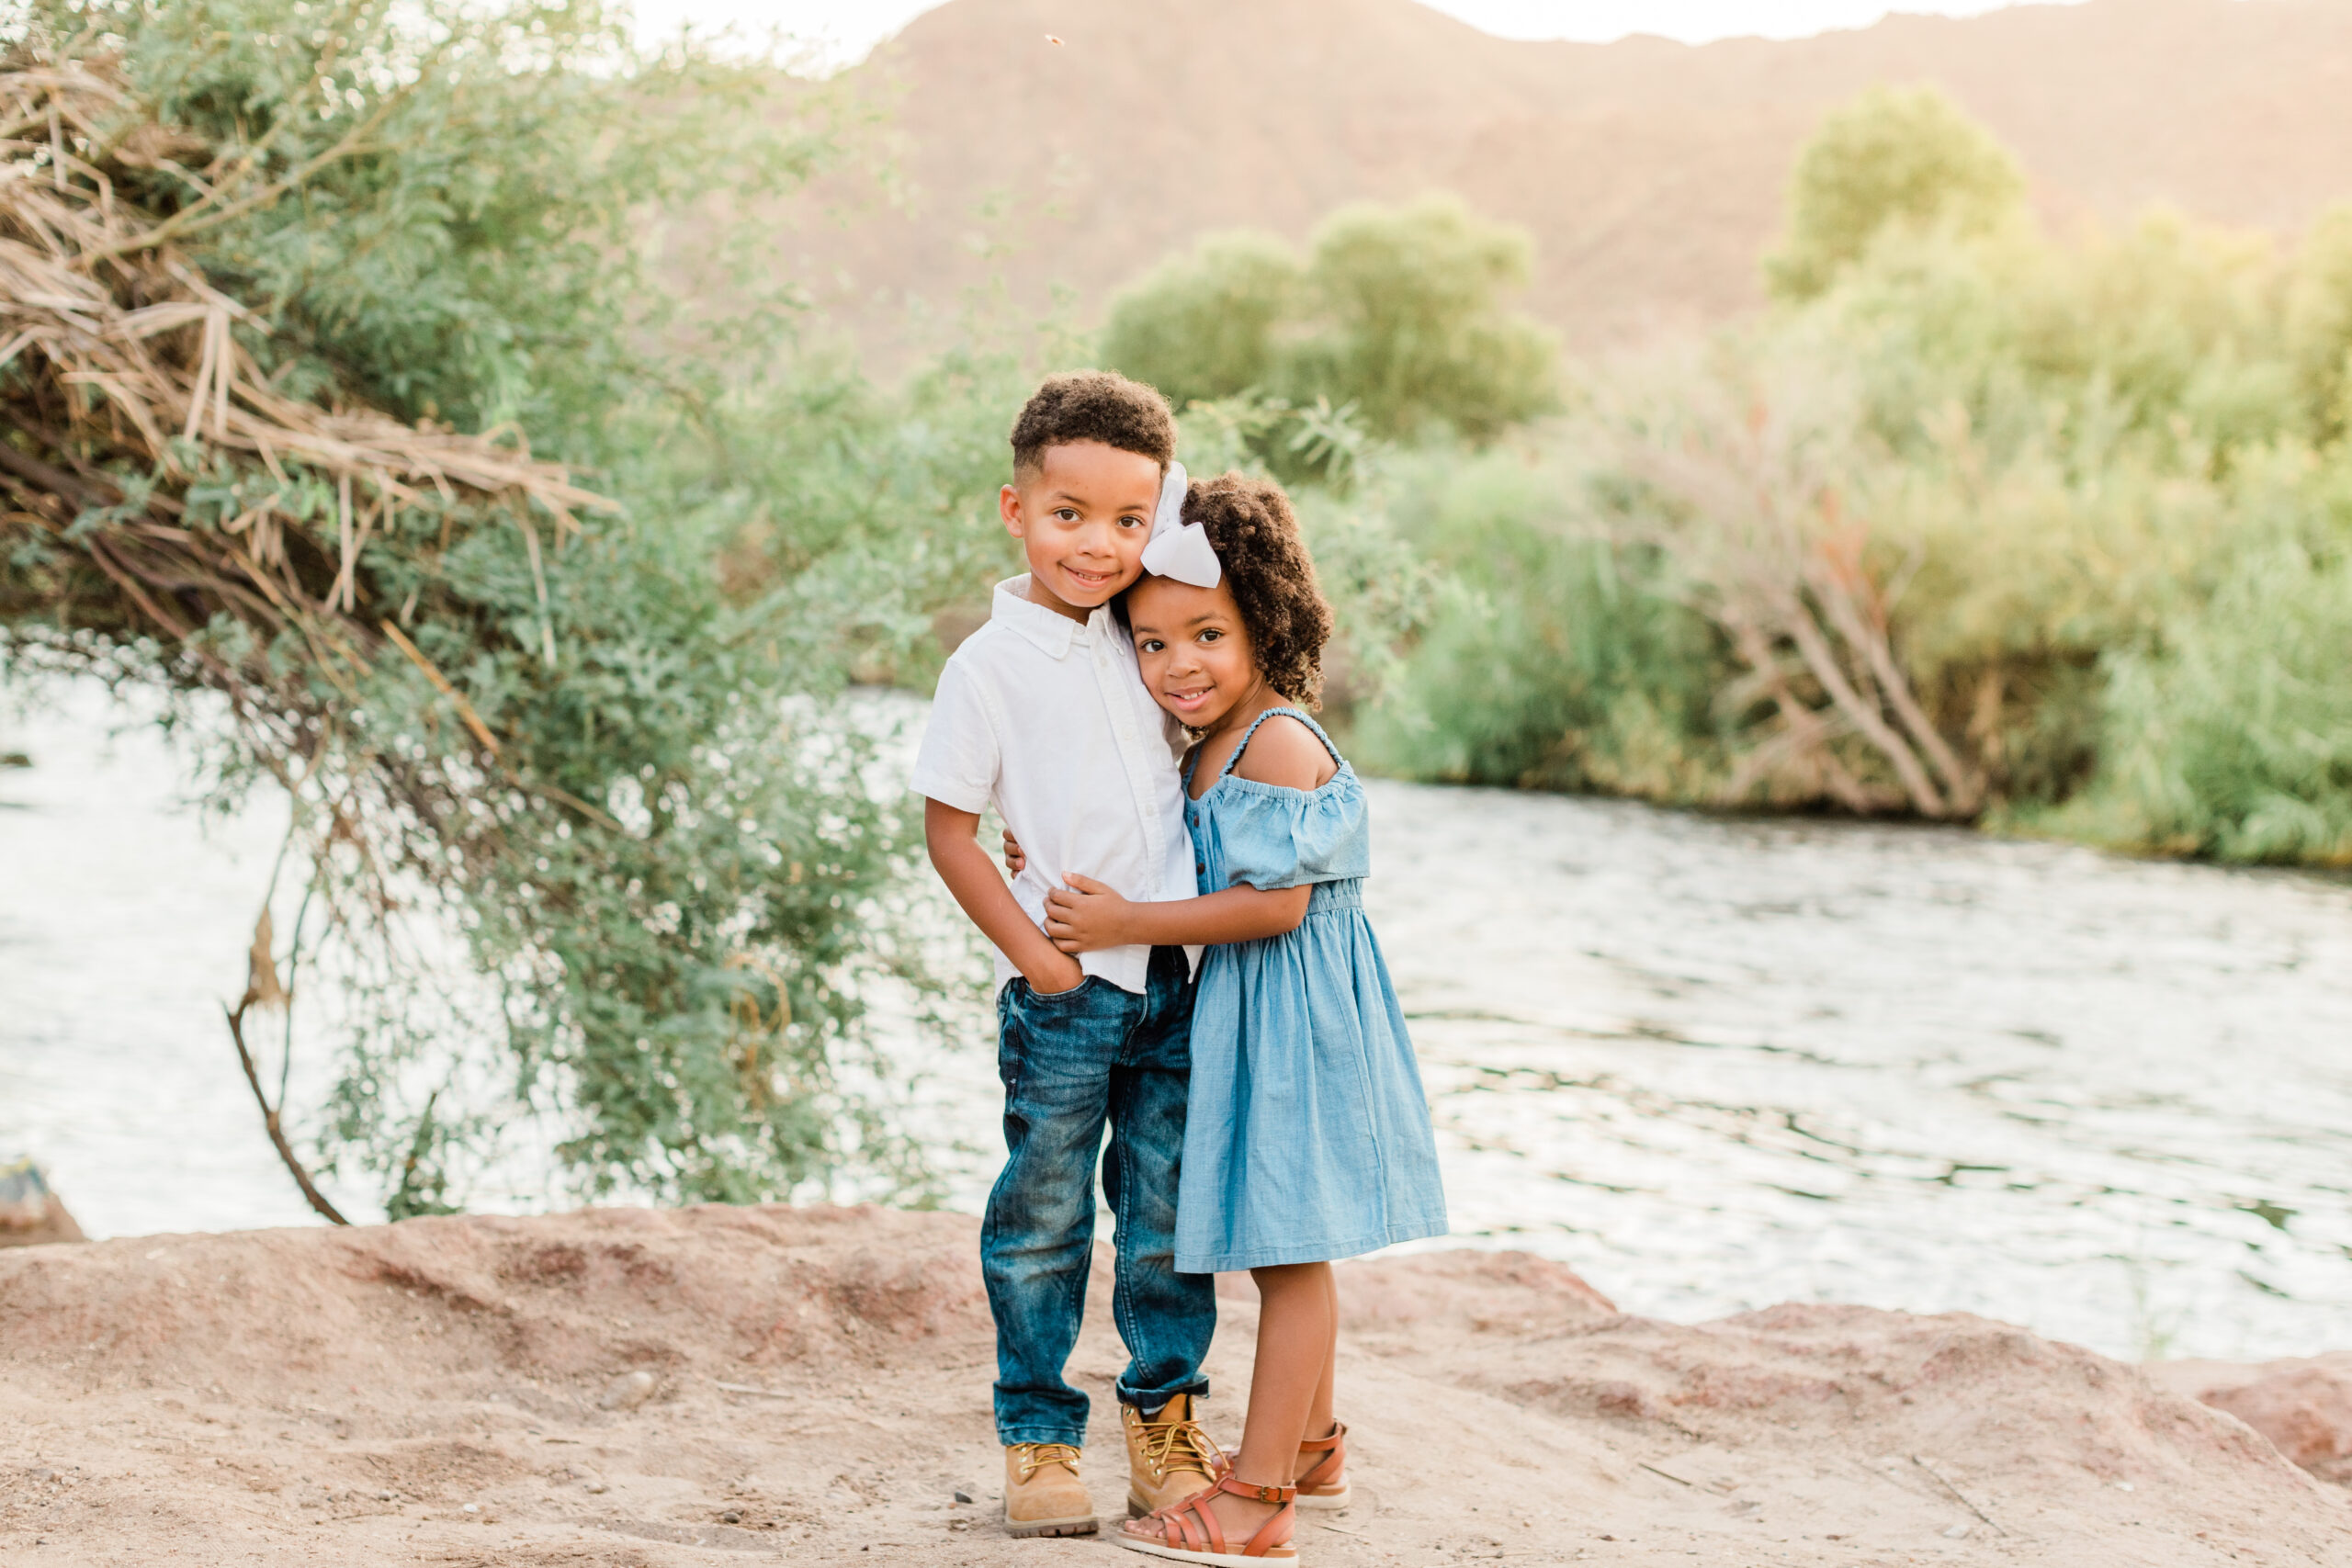 Queen Creek Wash Prickly Pear Photography Gilbert Photographer Gilbert Family Photographer Gilbert Family Photography Family Arizona Photographer Arizona Family Photographer Lifestyle Photography